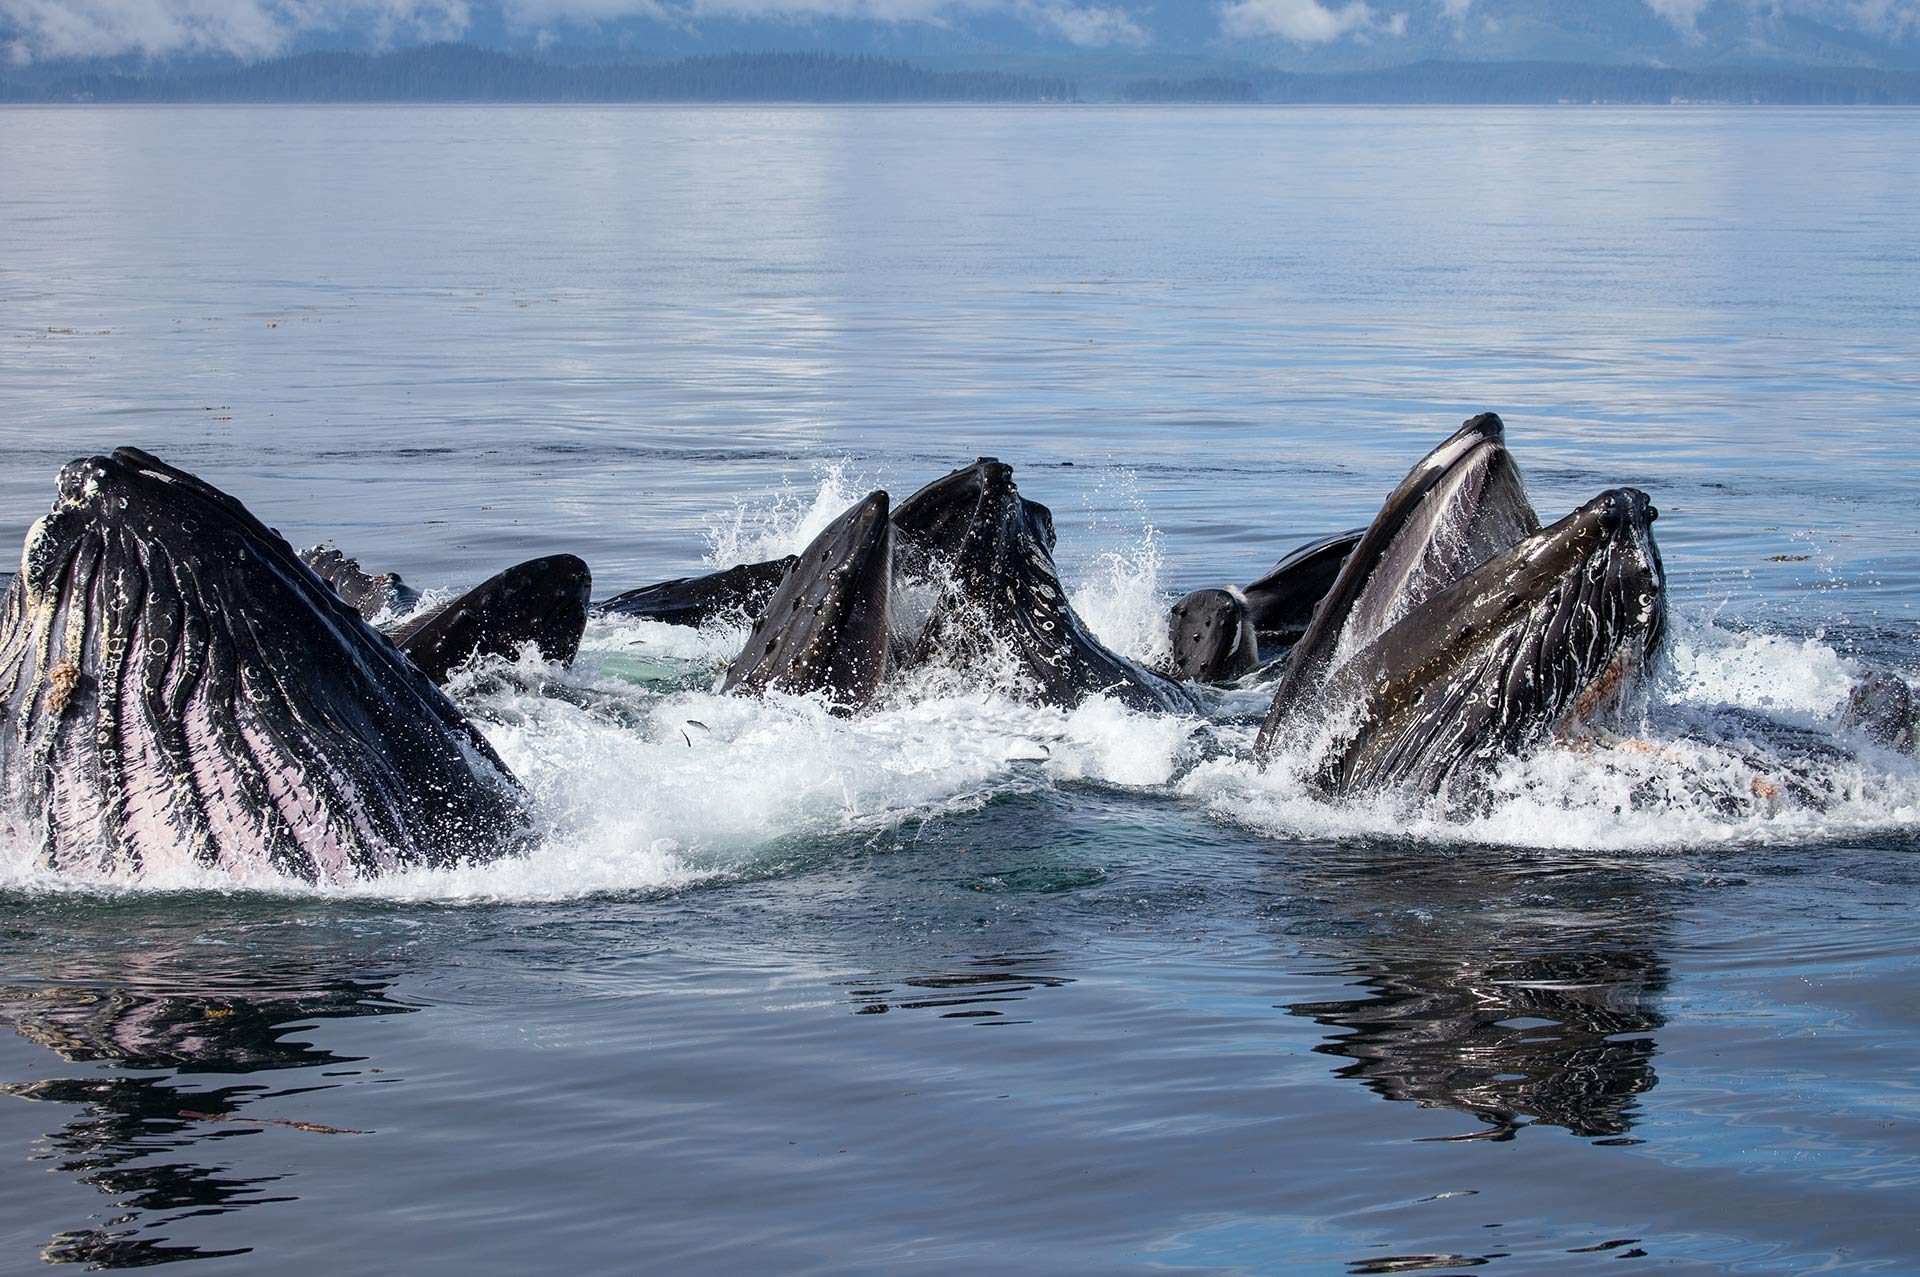 Yacht Charter Alaska Bubble Net Feeding Close Humpbacks Whales